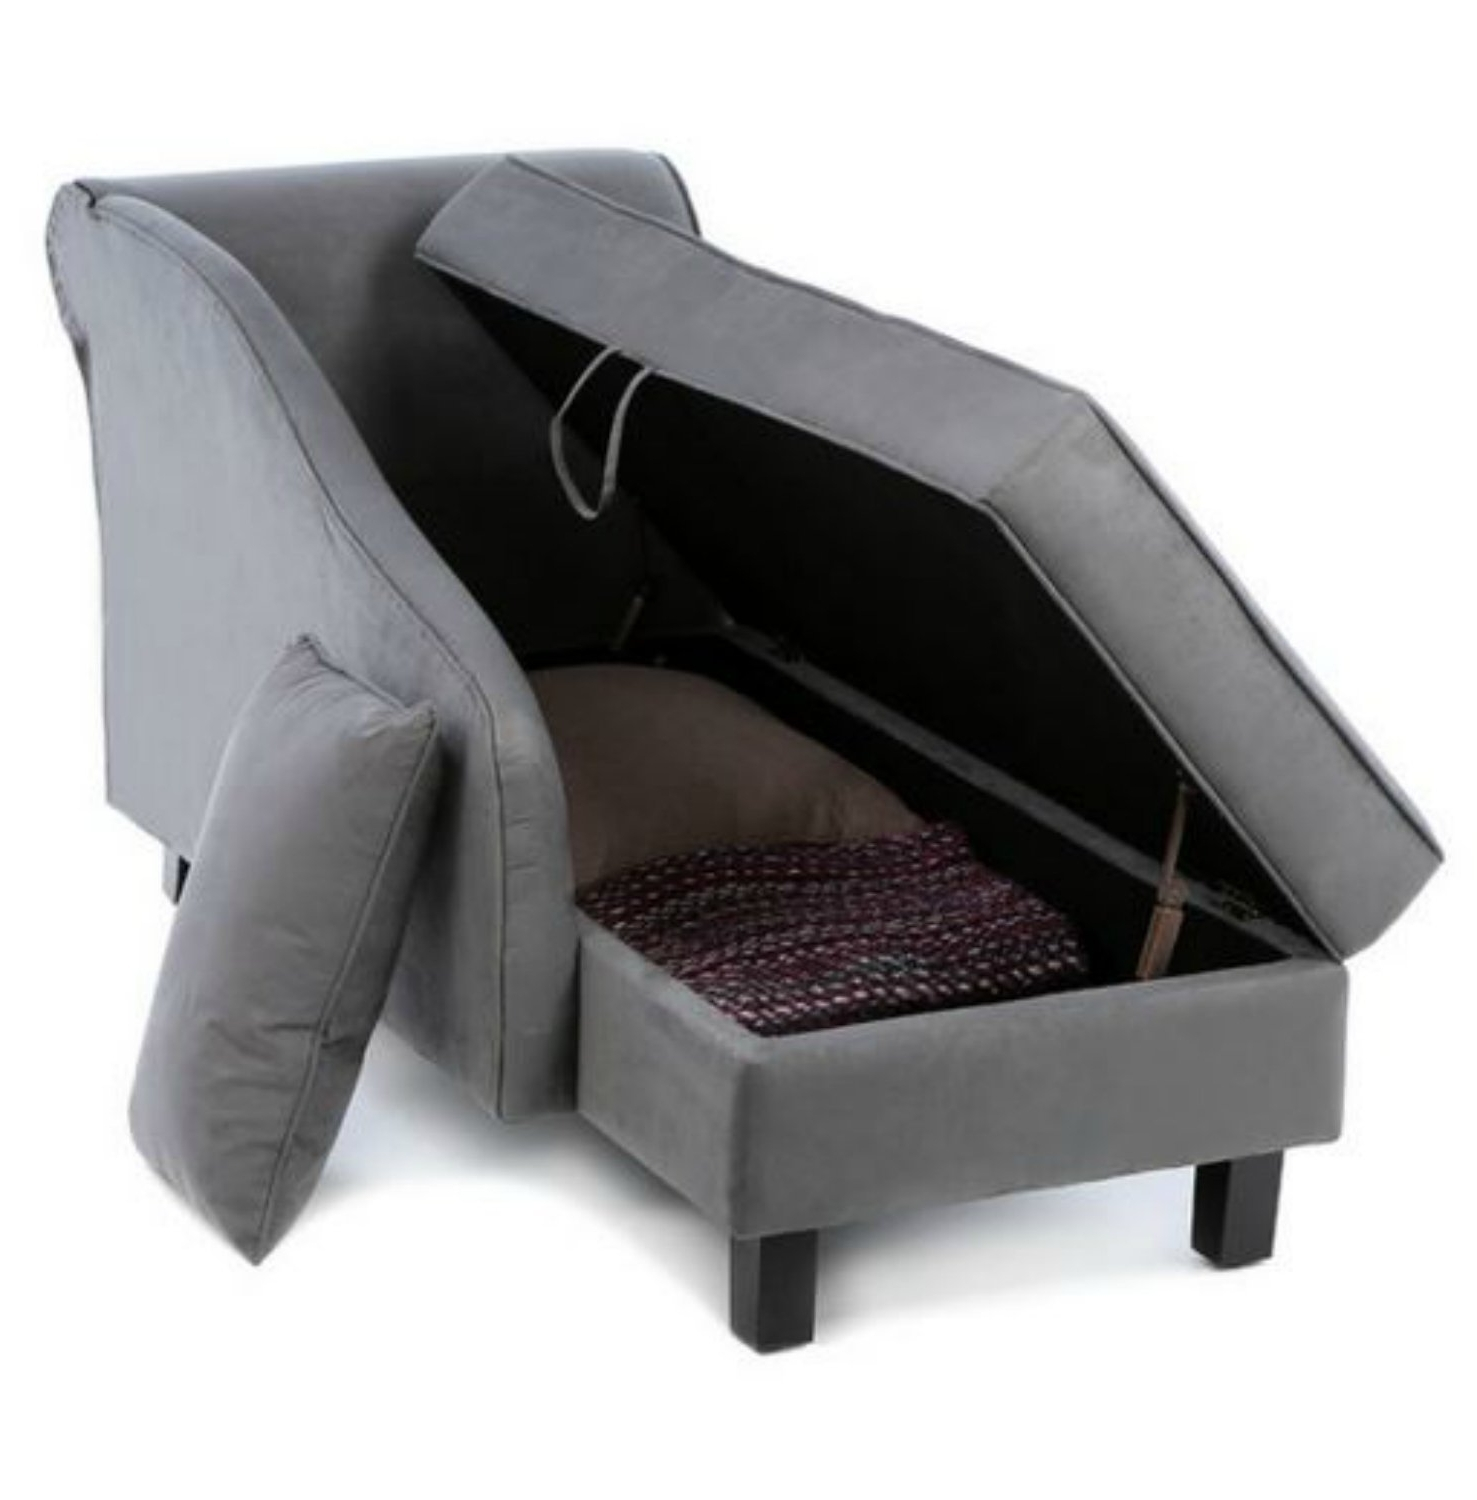 Amazon: Storage Chaise Lounge Chair  This Microfiber Intended For Well Known Gray Chaise Lounges (View 3 of 15)